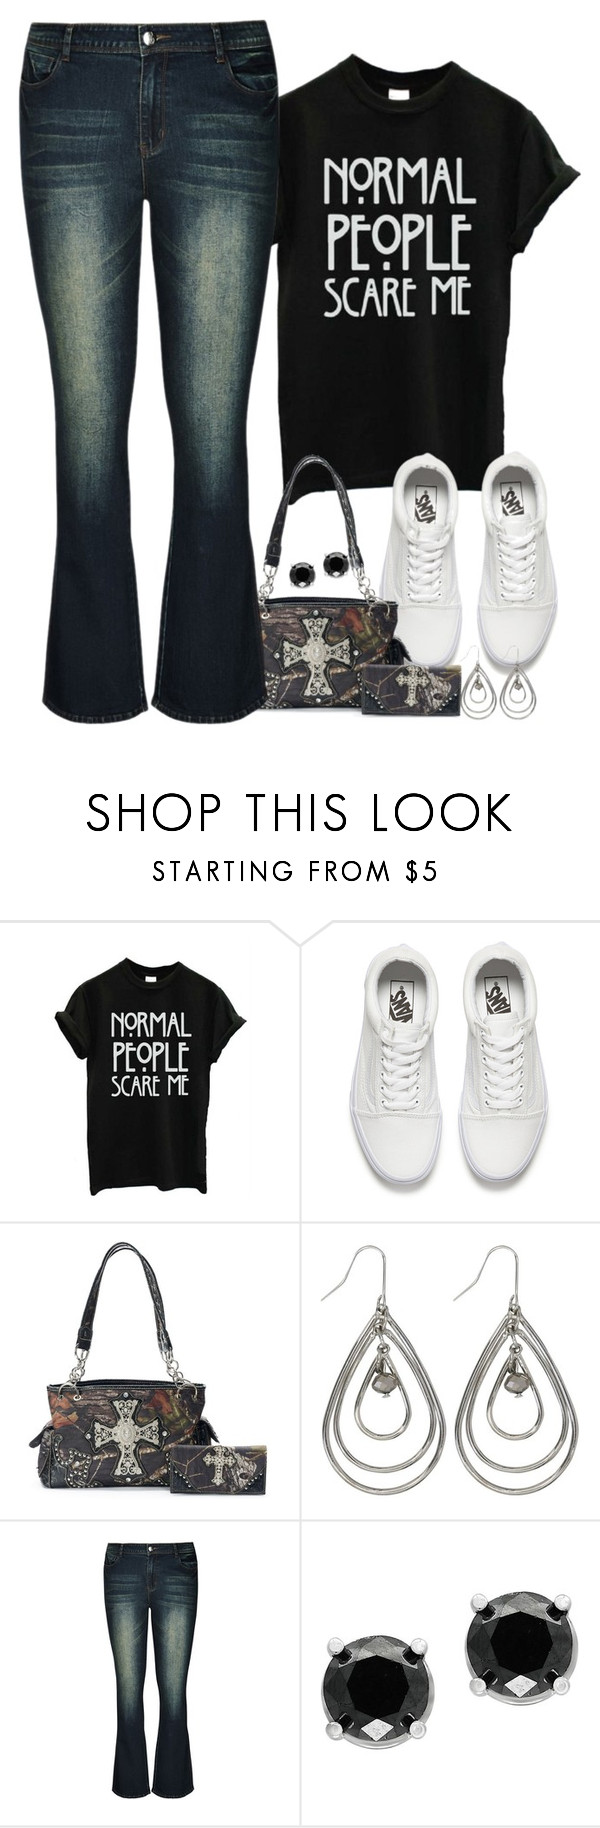 """""""Normal People Scare Me"""" by majezy ❤ liked on Polyvore featuring Vans, Mossy Oak, M&Co, City Chic, Effy Jewelry and plus size clothing"""